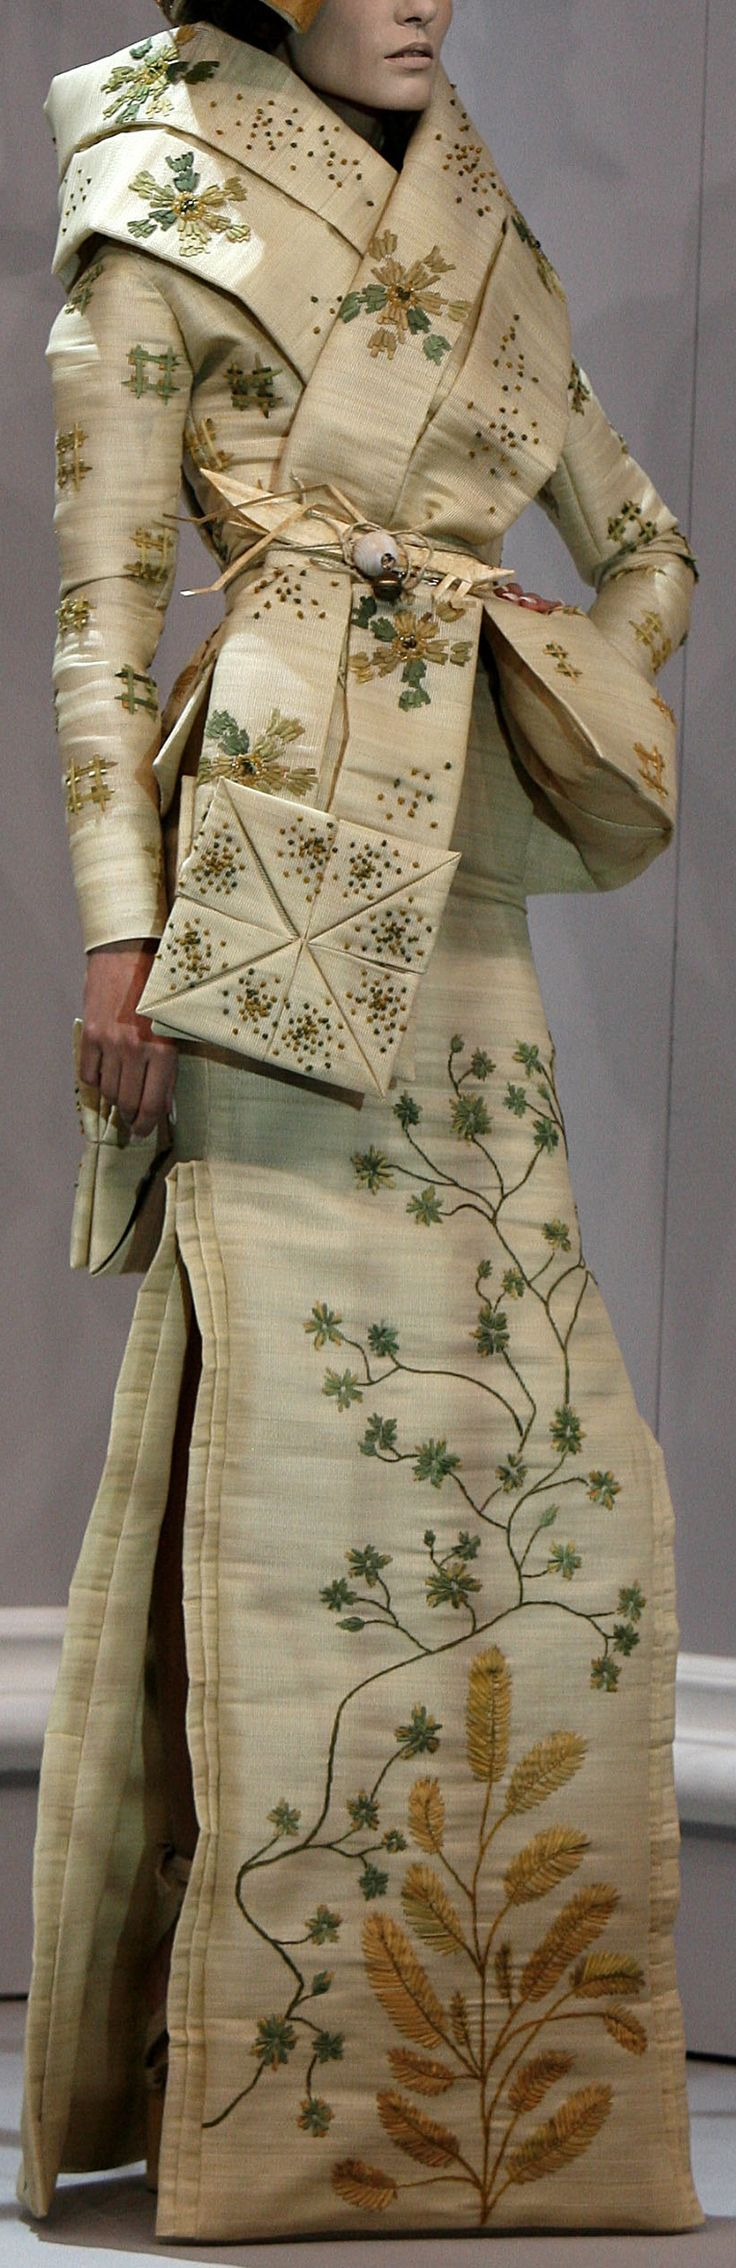 Christian Dior Haute Couture Printemps 2007